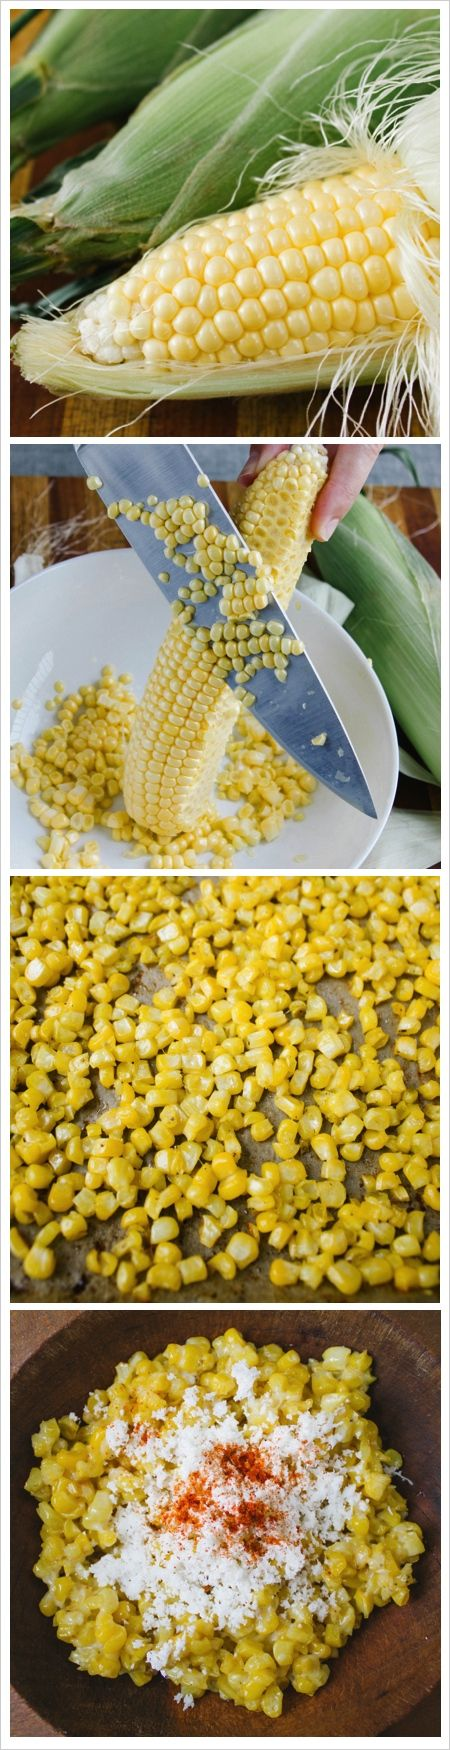 Roasted Corn With Cheese and Lime. Roast the corn off the cob in the oven!